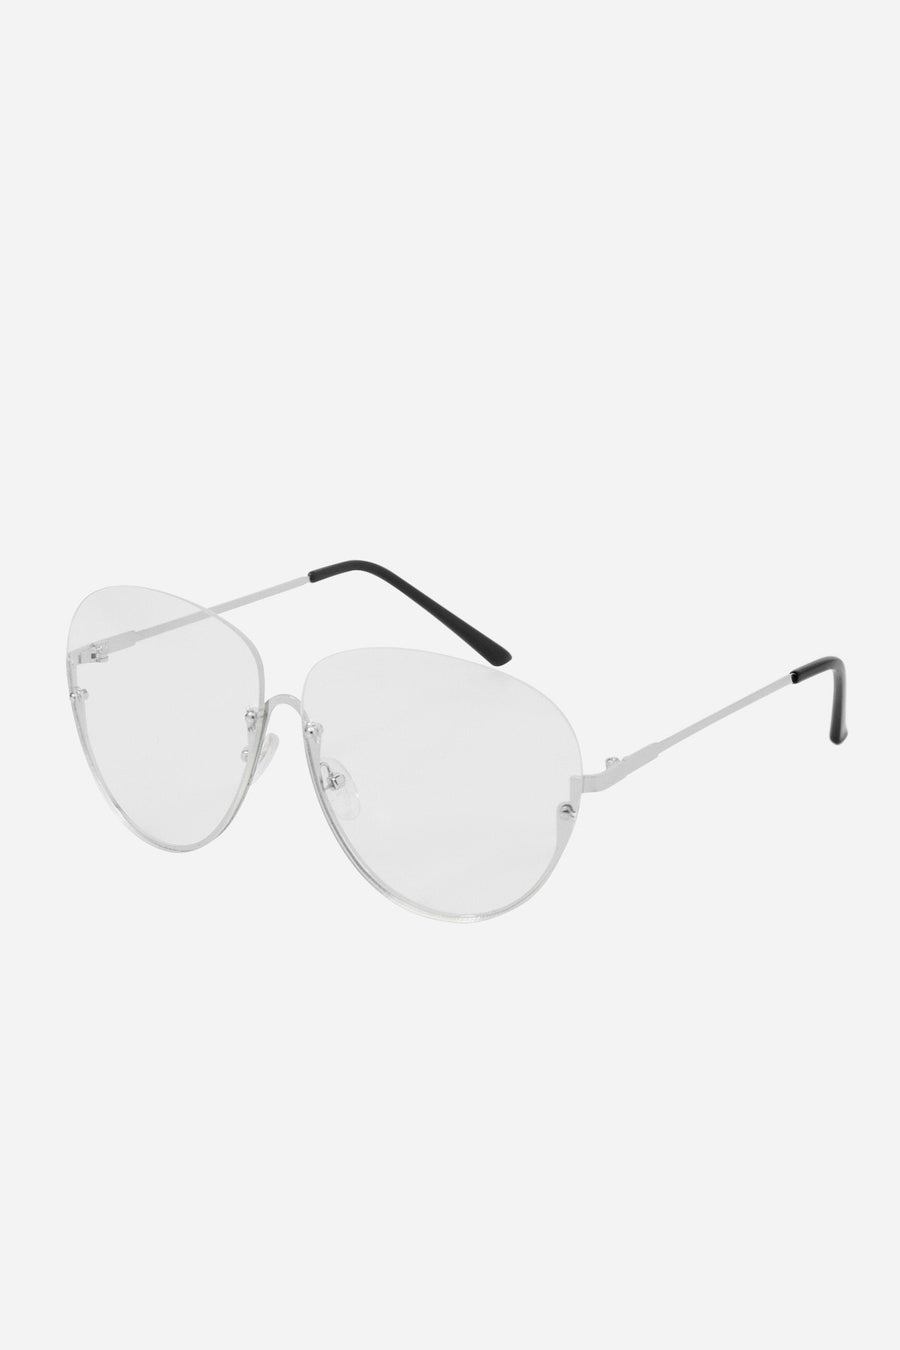 Top Of The Charts Glasses - Silver